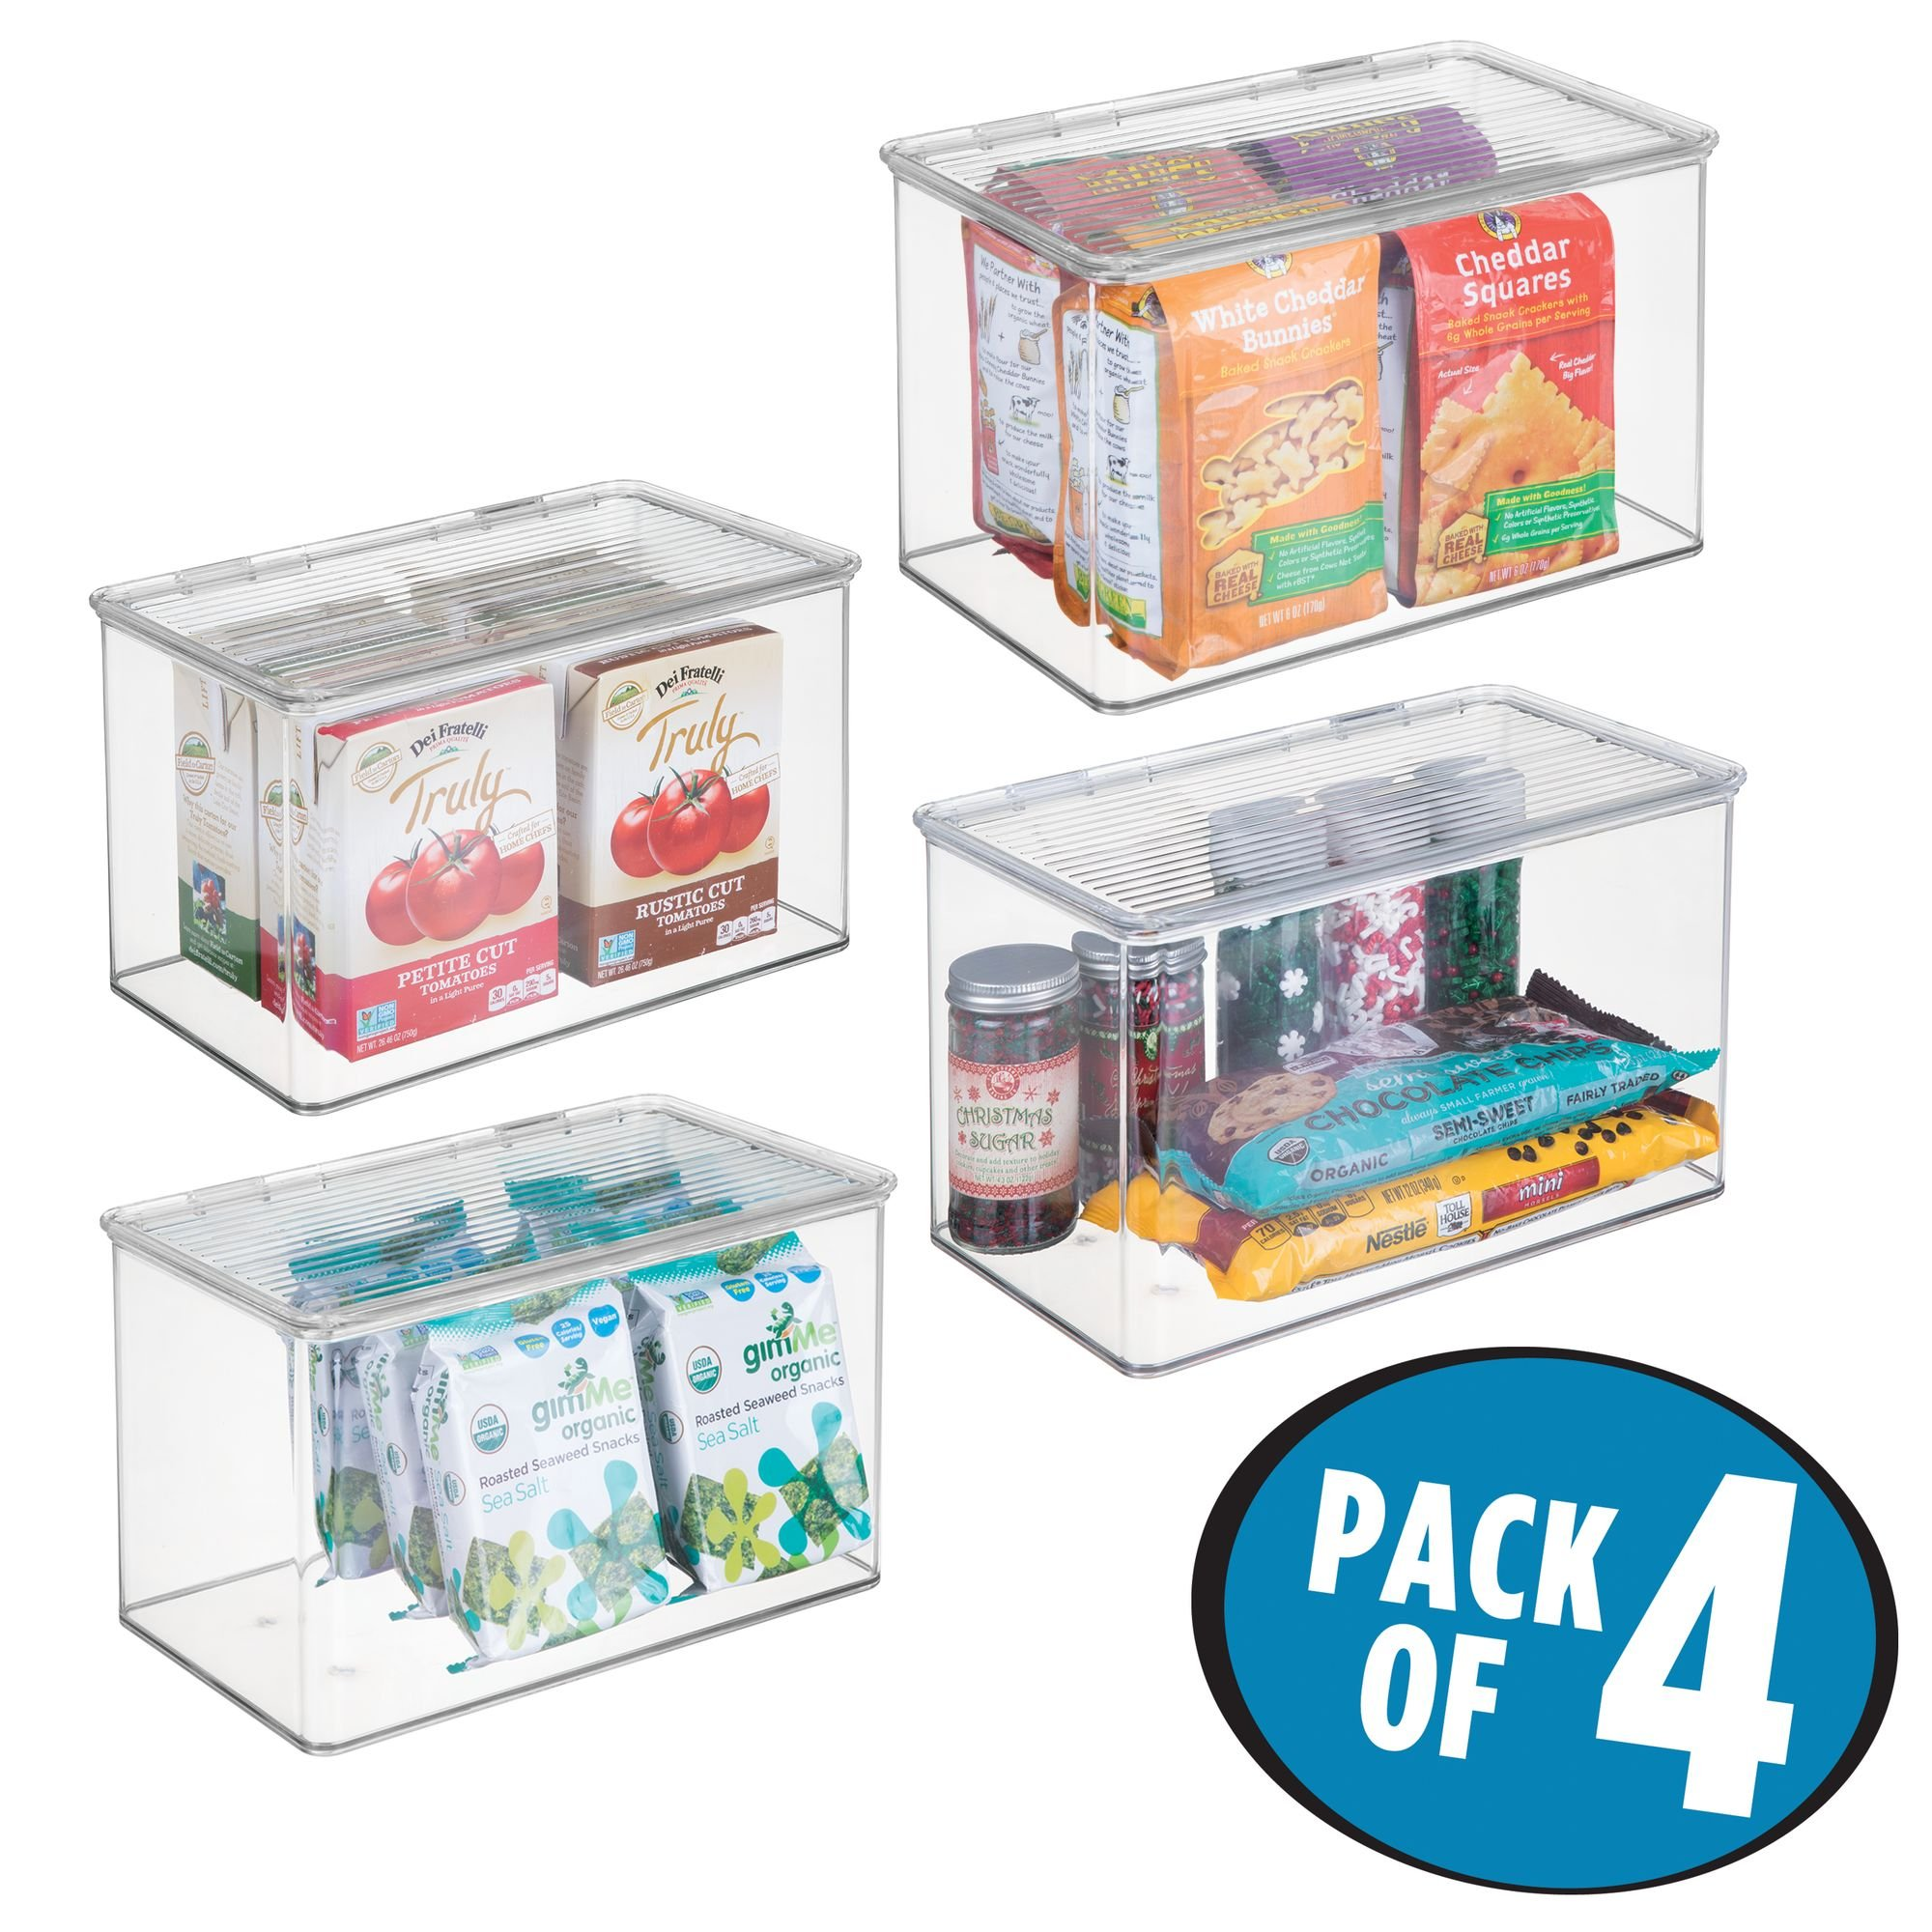 MDesign Stackable Plastic Food Storage Container Bin, Hinged Lid   For  Kitchen, Pantry, Cabinet, Fridge/Freezer   Deep ...